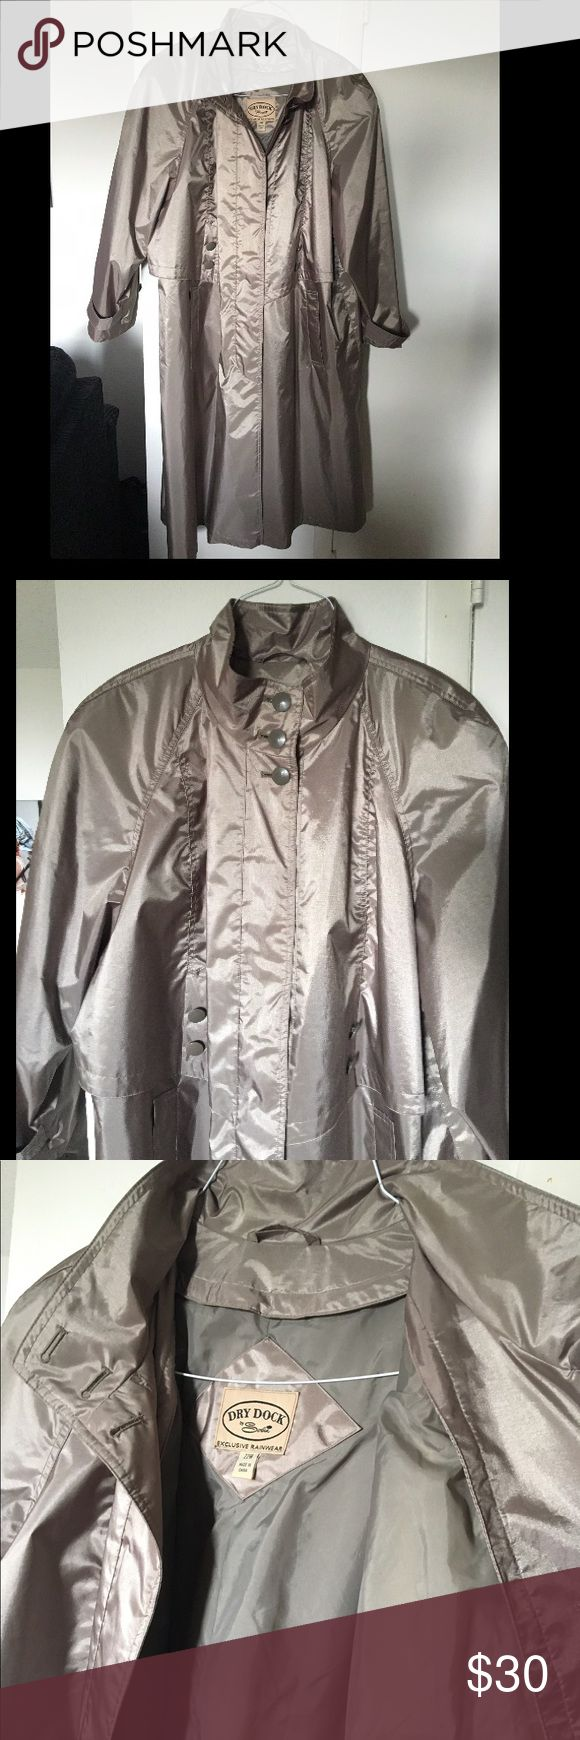 Dry Dock Rain Coat Sleek, Taupe long raincoat by Dry Dock. Barely used. In great condition. Has a zipper down the front, as well as buttons. Also has a drawstring round the waist for a cinched look. Jackets & Coats Trench Coats